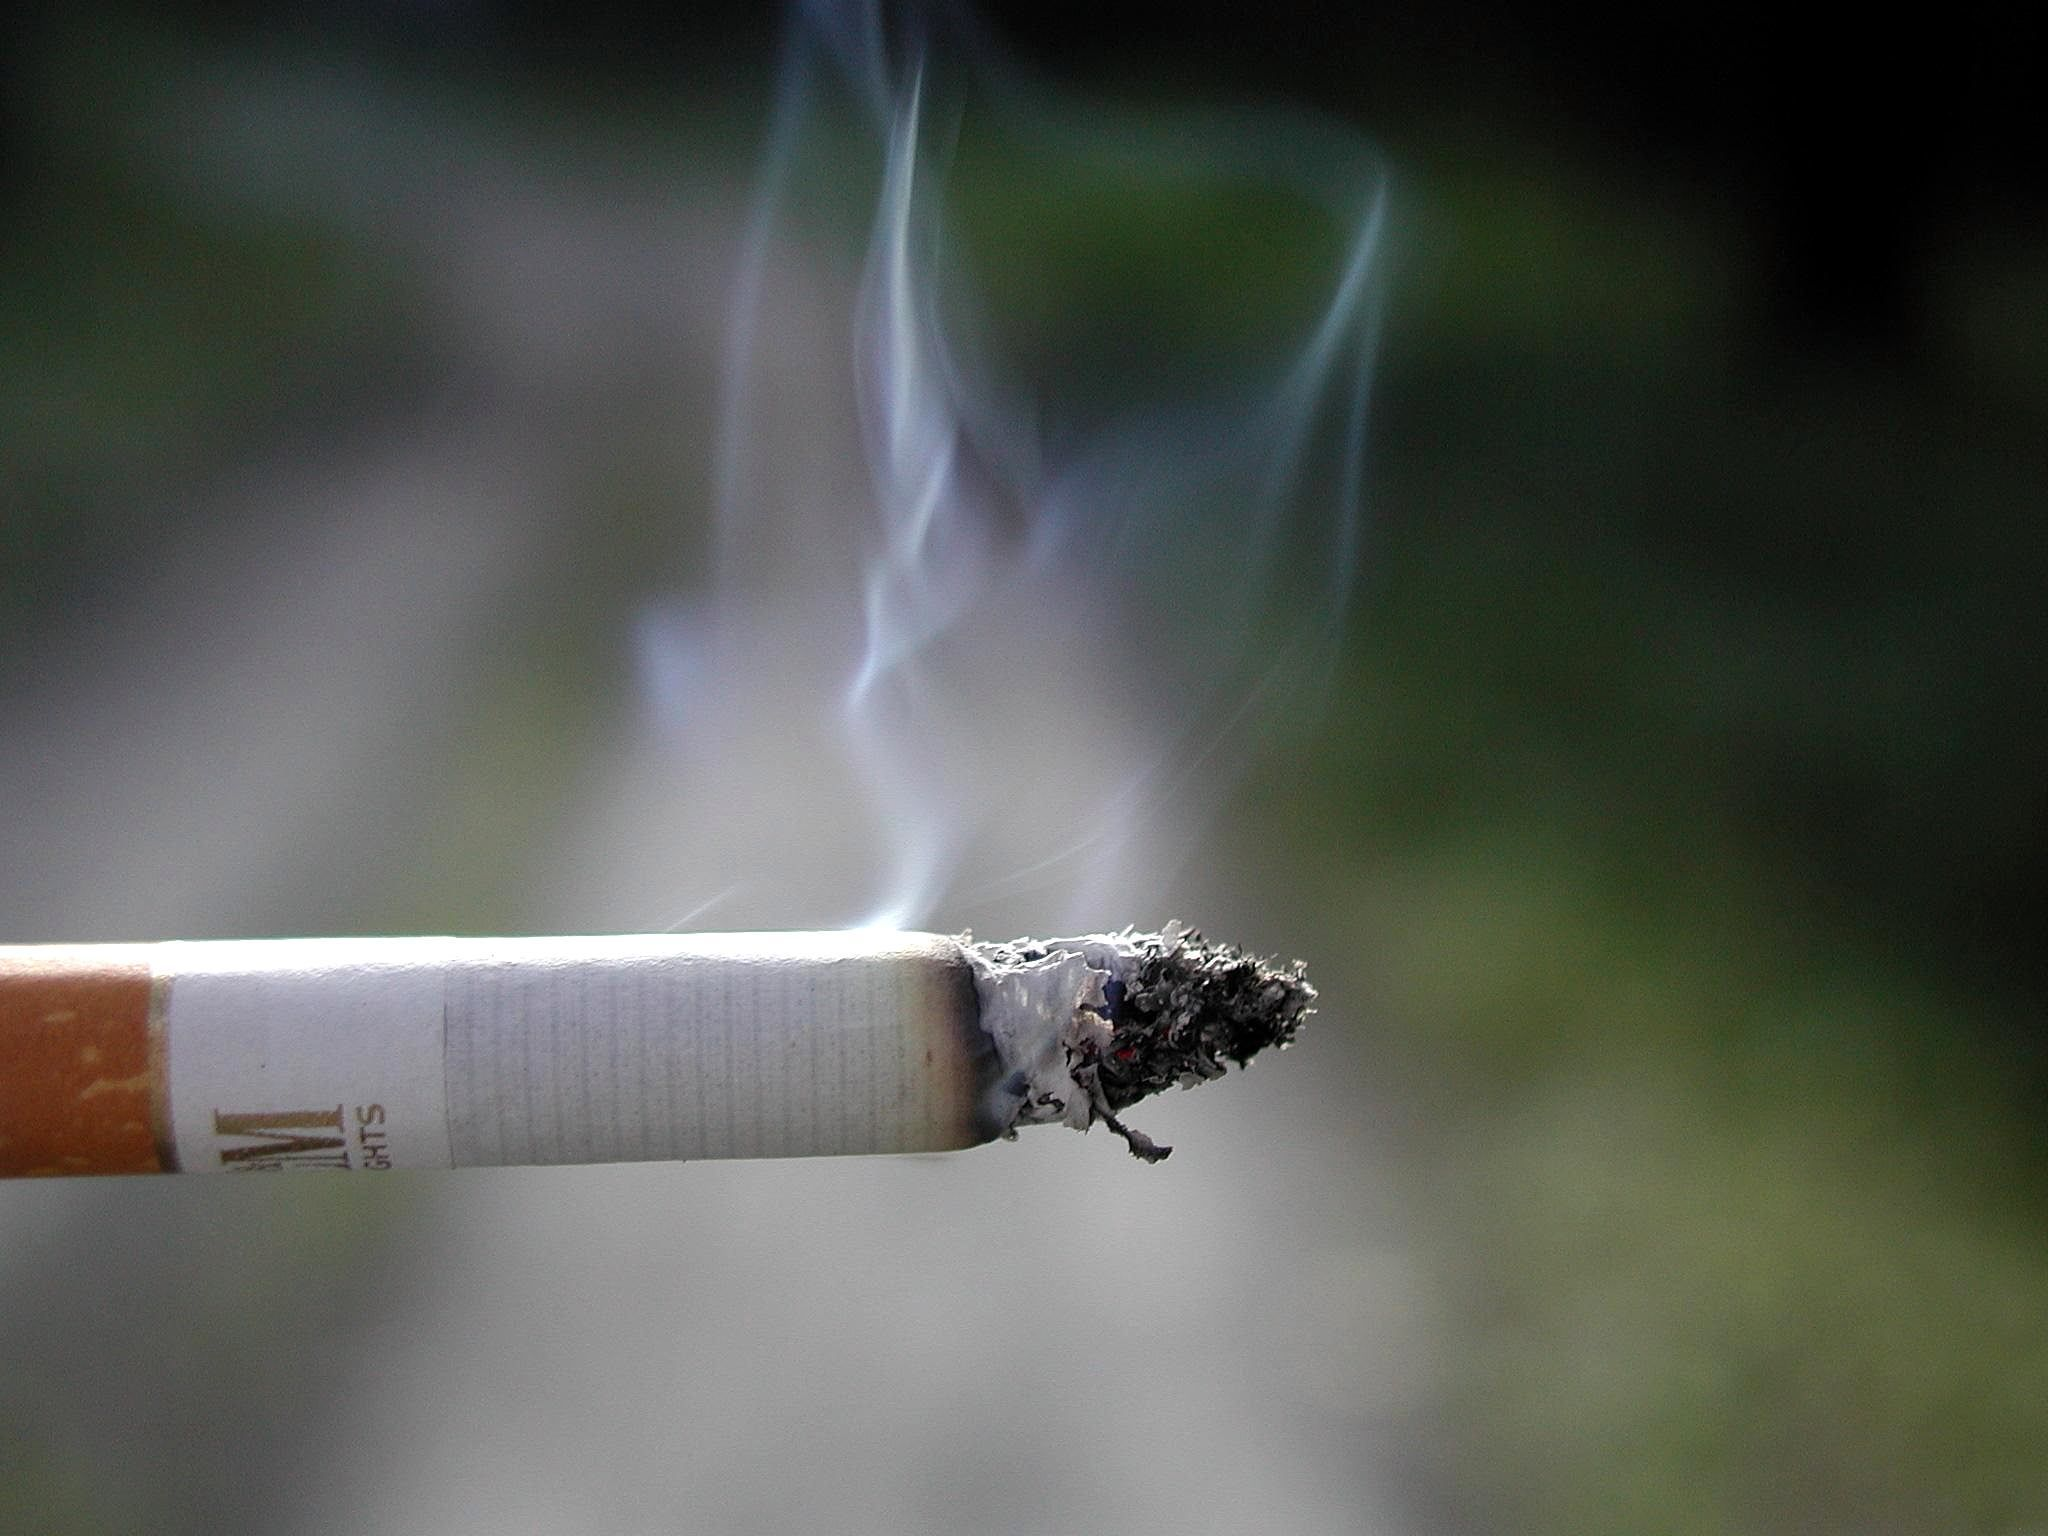 Chicago set to raise minimum smoking age to 21